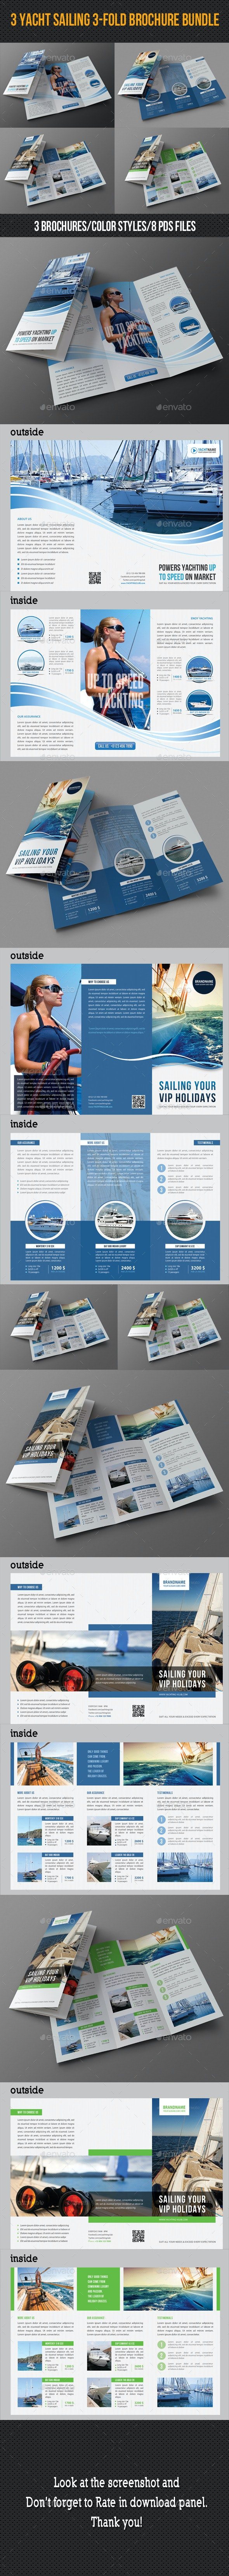 3 in 1 Sailing Travel Trifold Brochure Bundle - Corporate Brochures